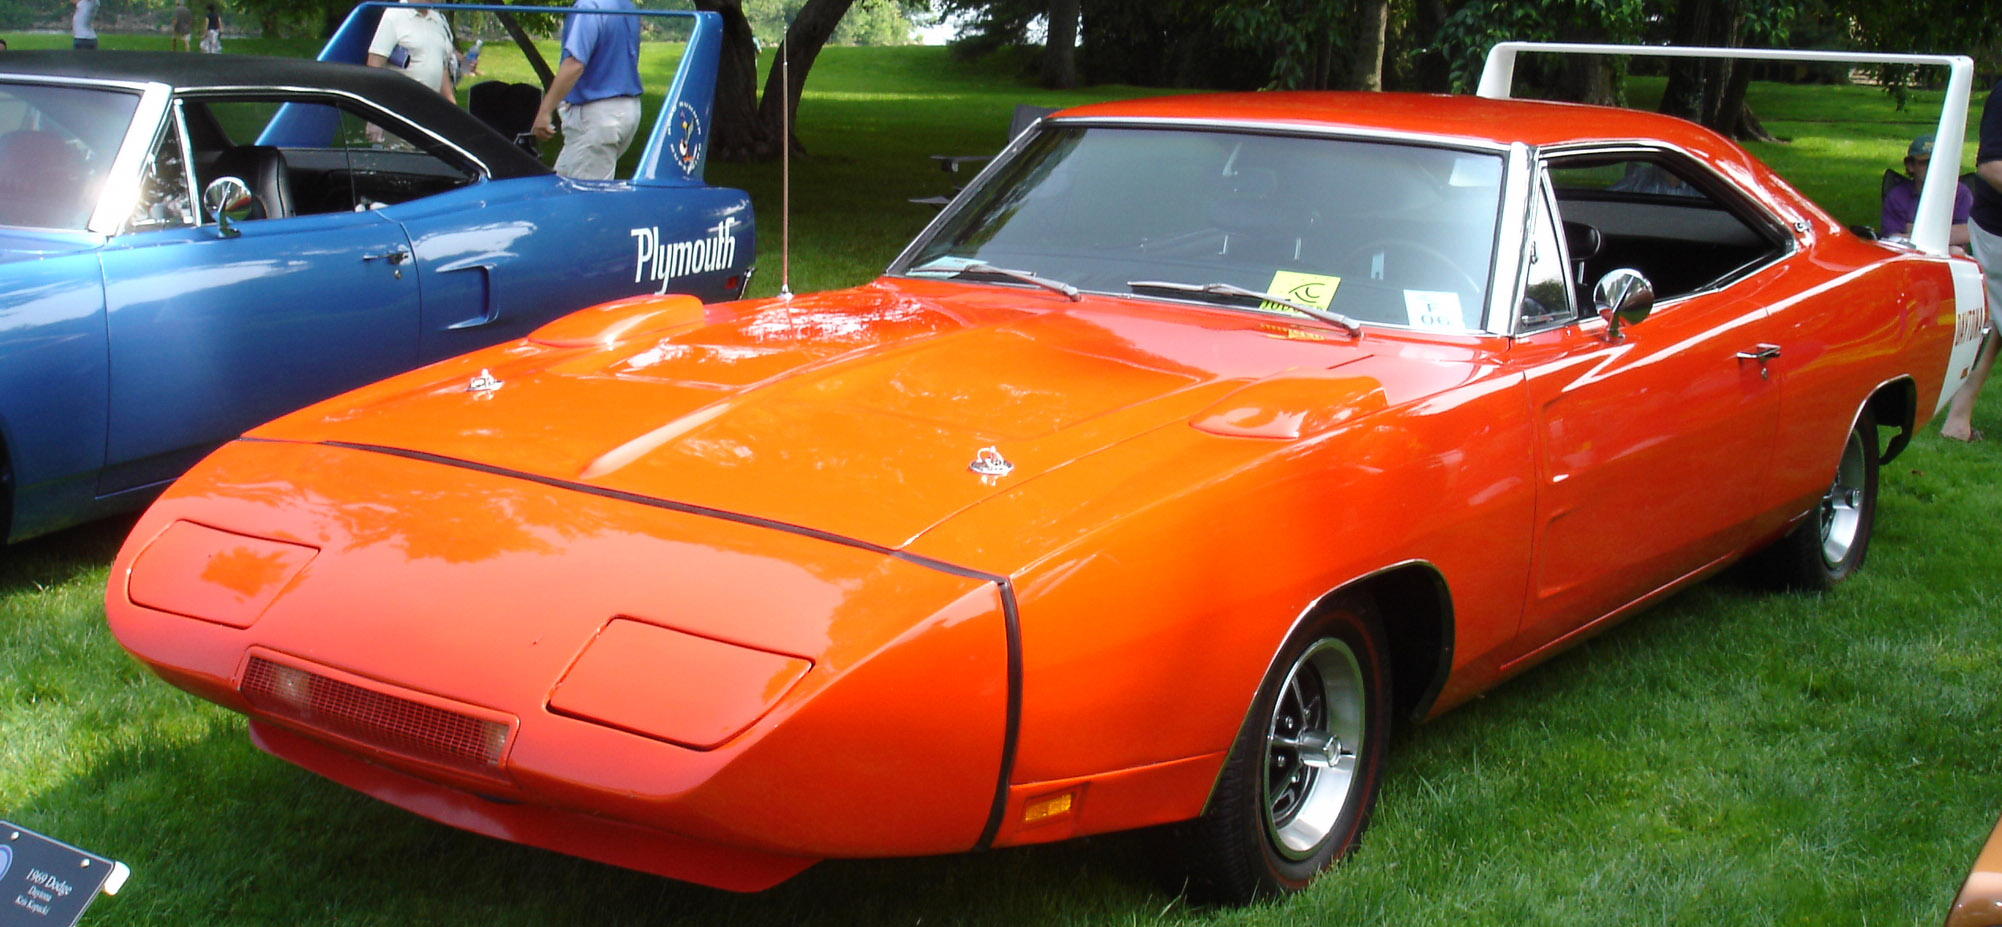 dodge daytona images #1